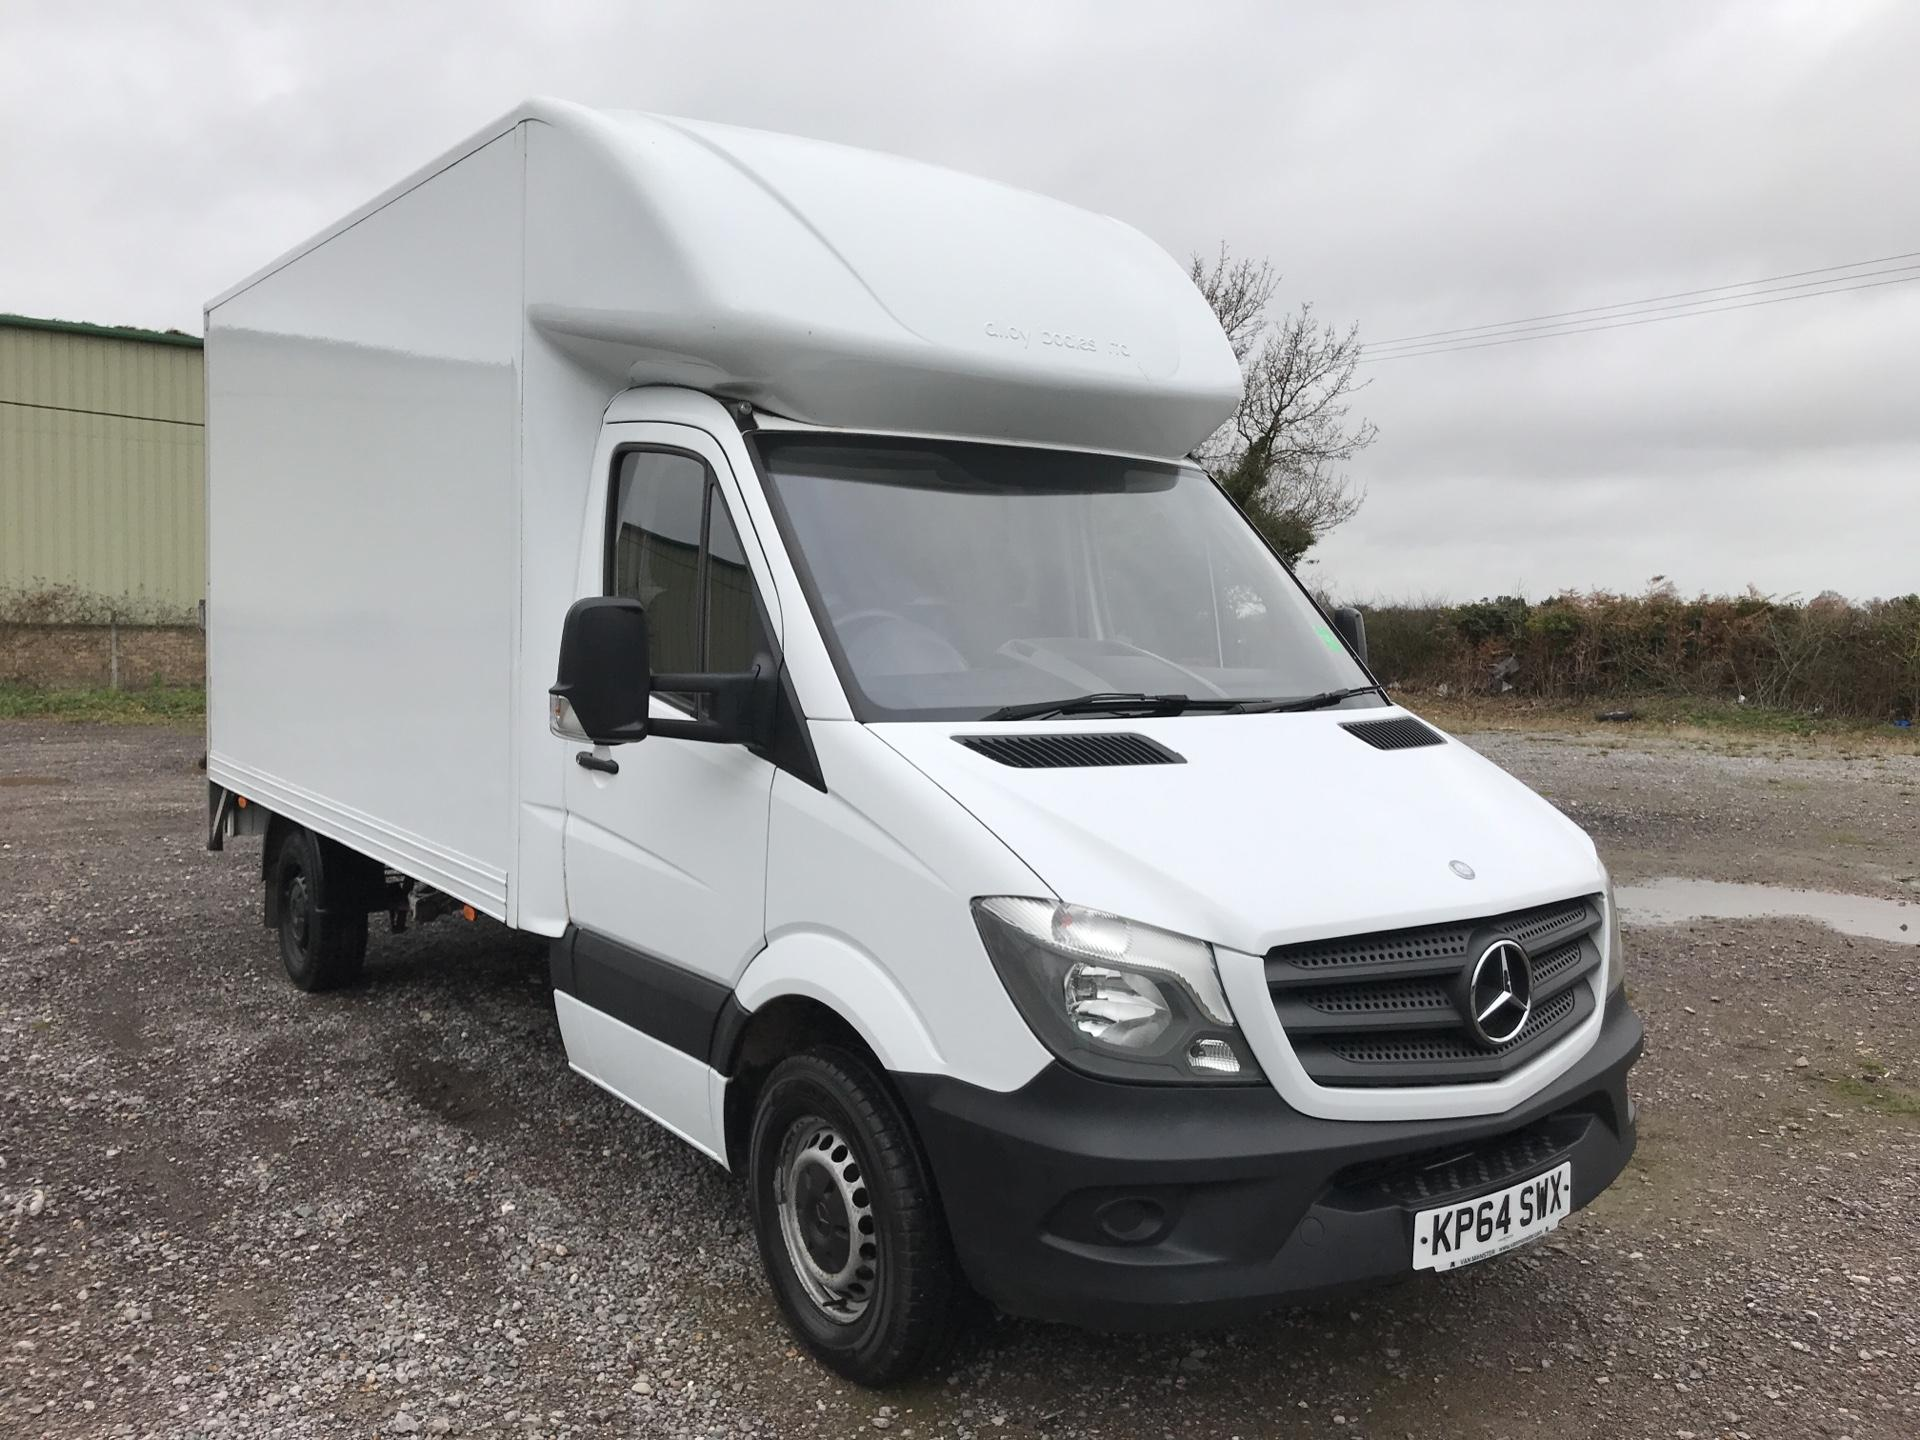 2014 Mercedes-Benz Sprinter 313 CDI LWB LUTON EURO 5 *VALUE RANGE VEHICLE - CONDITION REFLECTED IN PRICE* (KP64SWX)